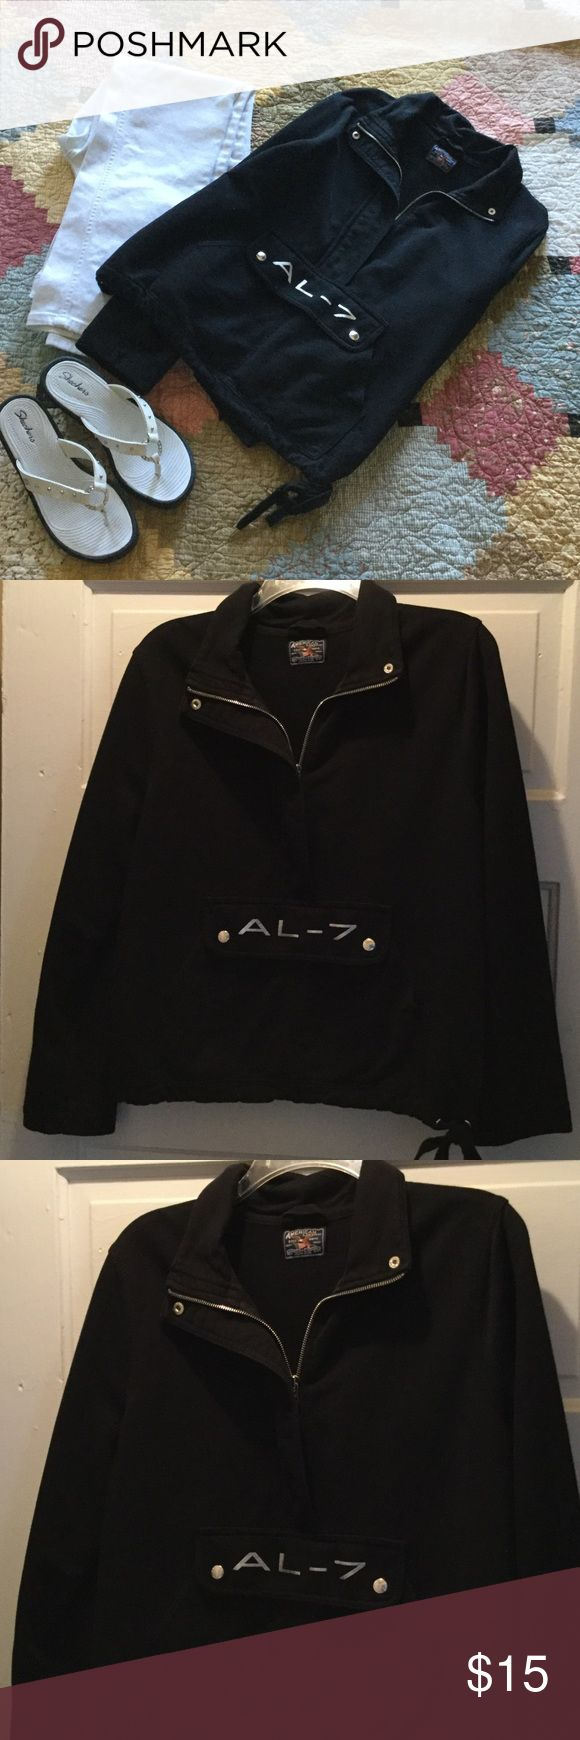 🎁 Pre-Black Friday Sale 🎁🏍 Moto Style Pullover Cool 3/4 zip front top with kangaroo pockets and drawstring hem American Living Tops Sweatshirts & Hoodies